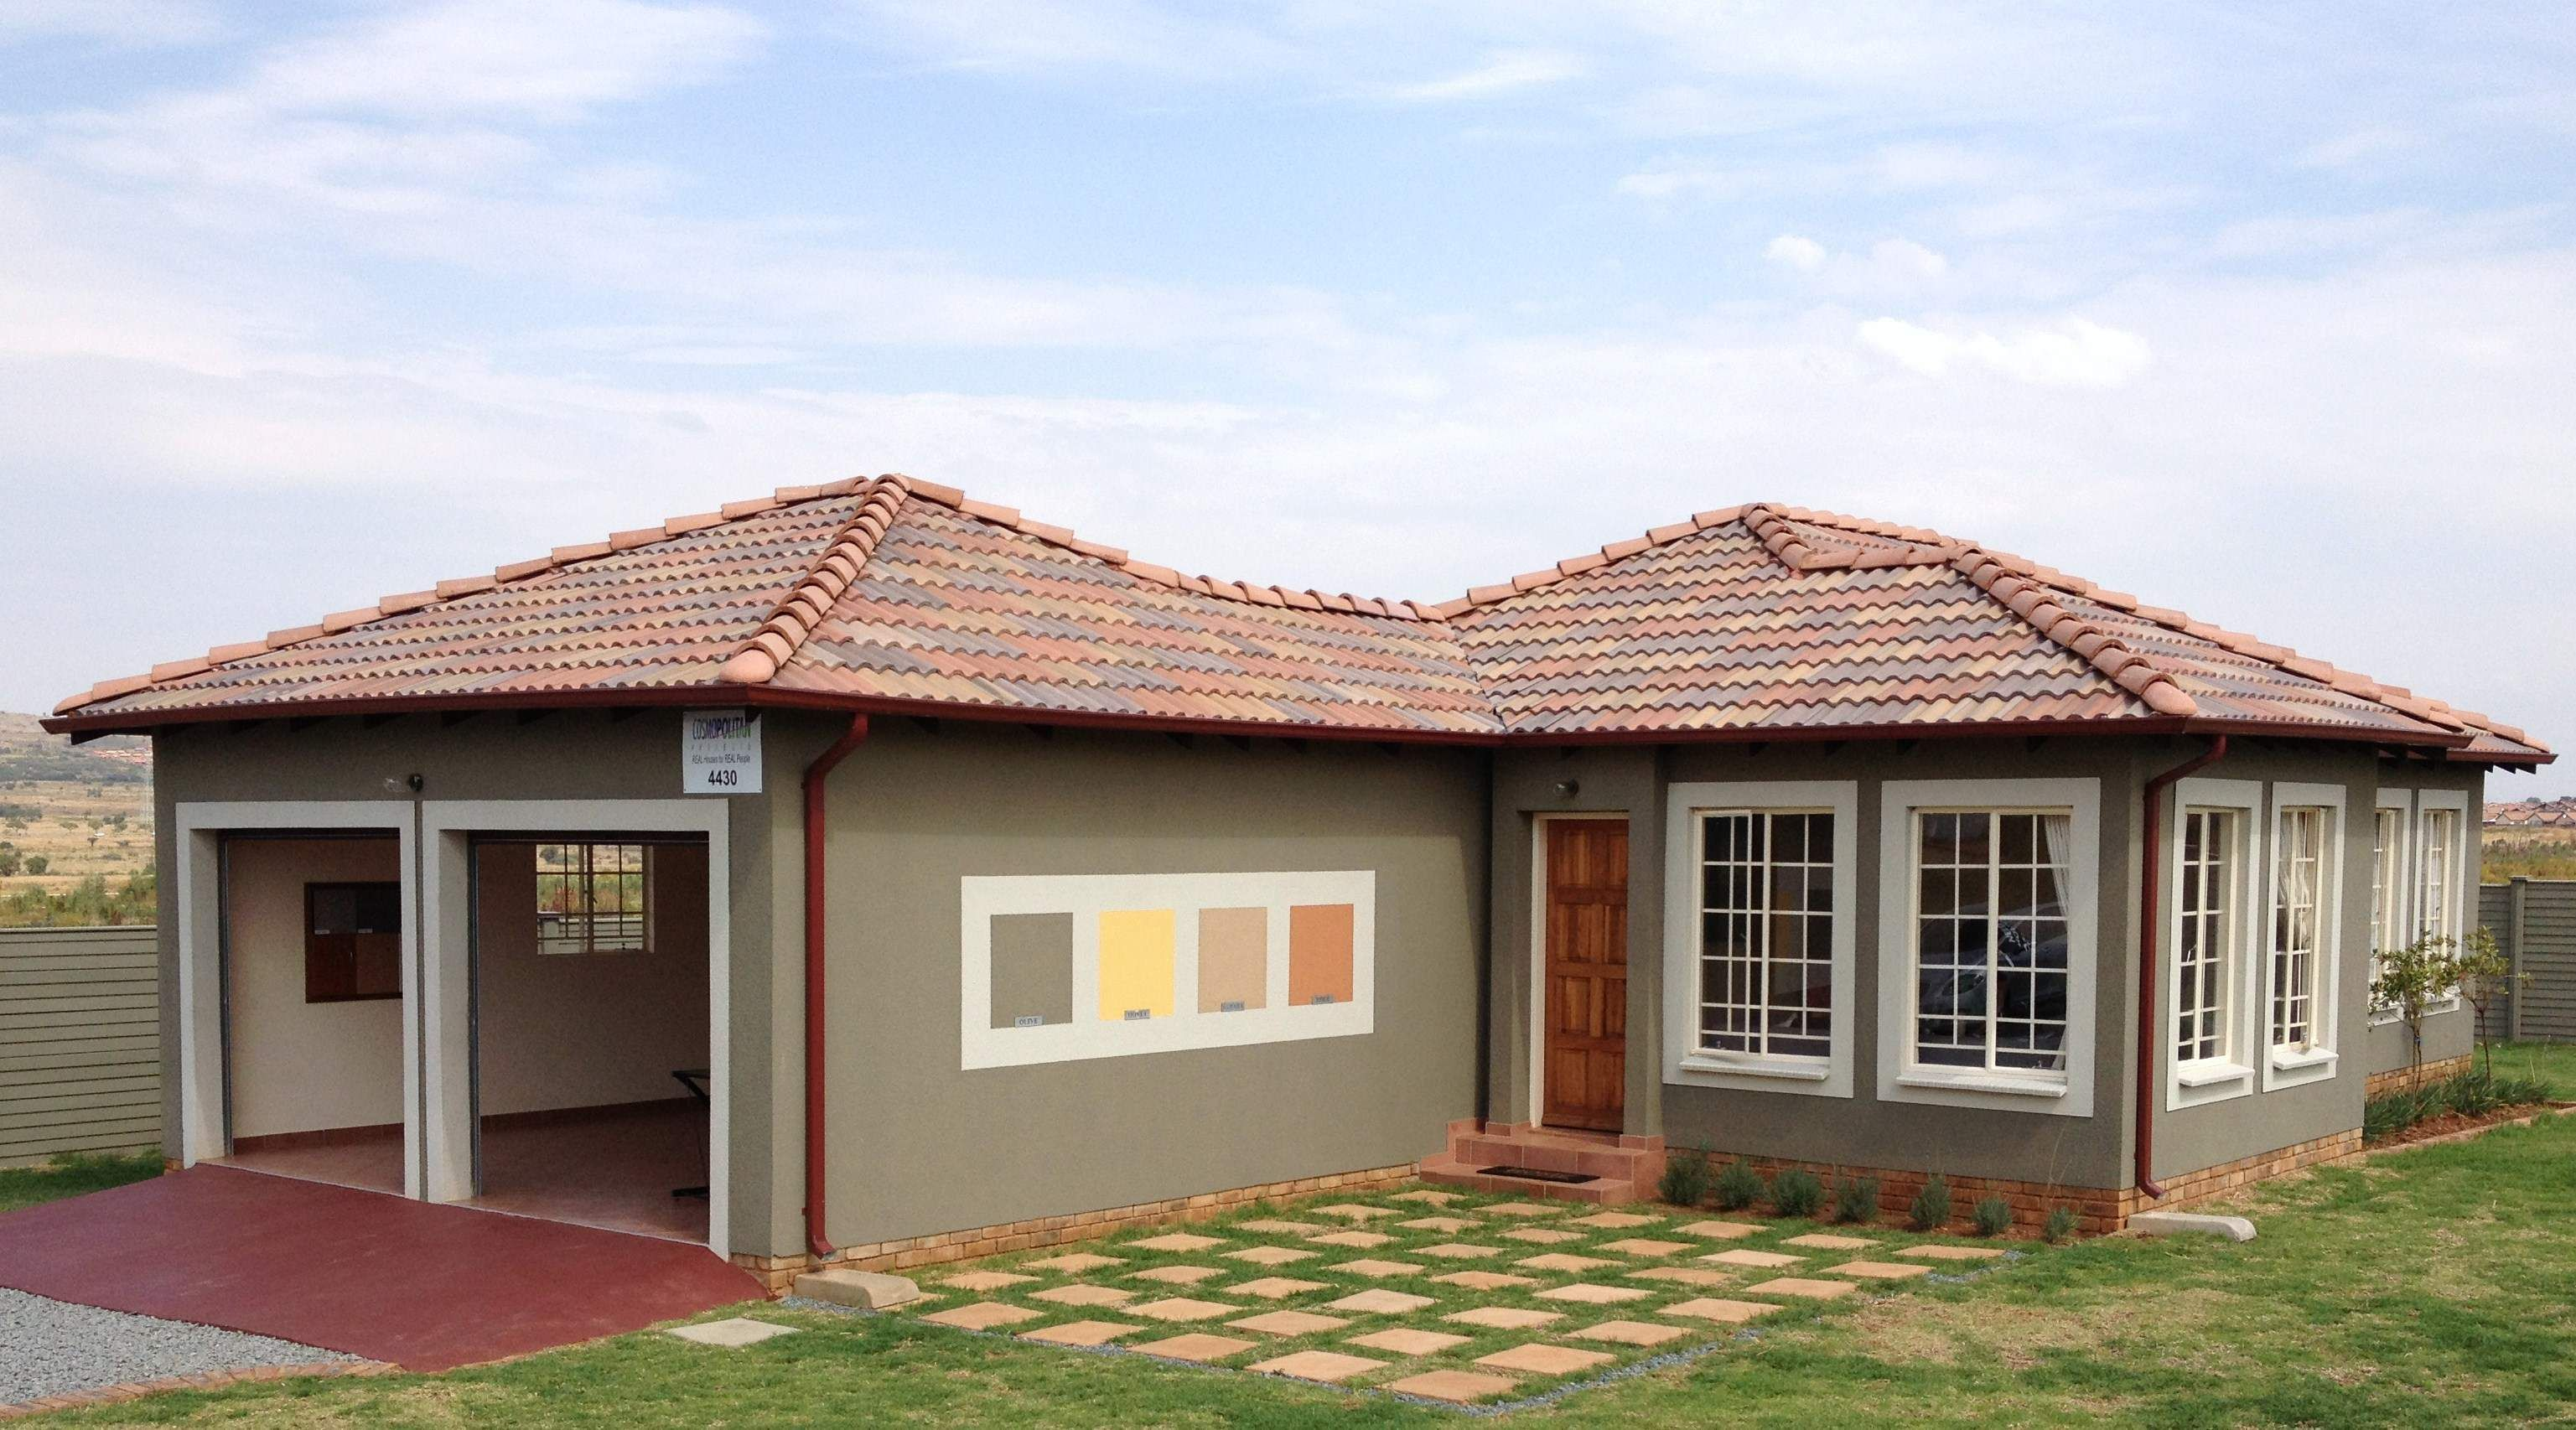 The tuscan house plans designs south africa modern tuscan house is     The tuscan house plans designs south africa modern tuscan house is designed  that talking about to the Home Interior looking  Description from  limbago com